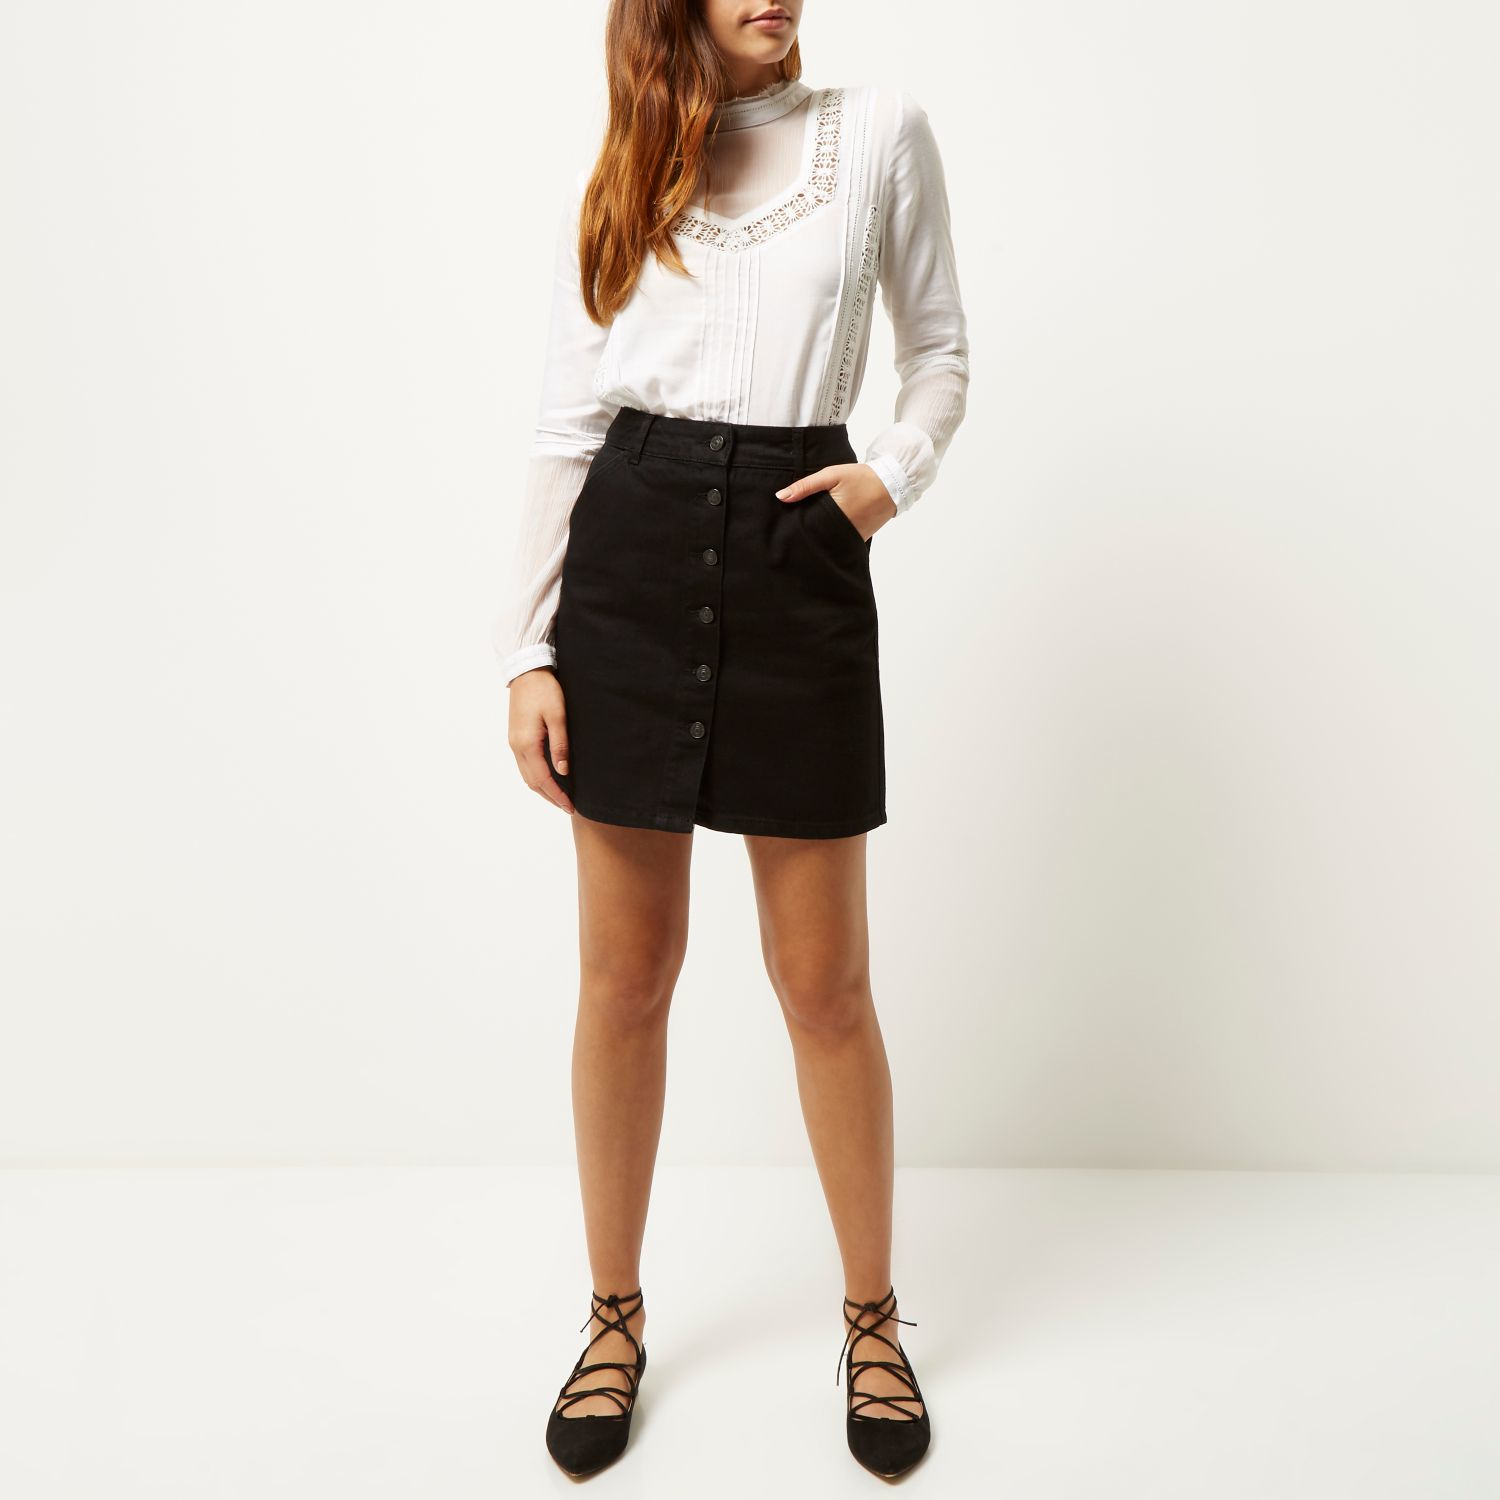 Black Denim Button Up Skirt - Dress Ala